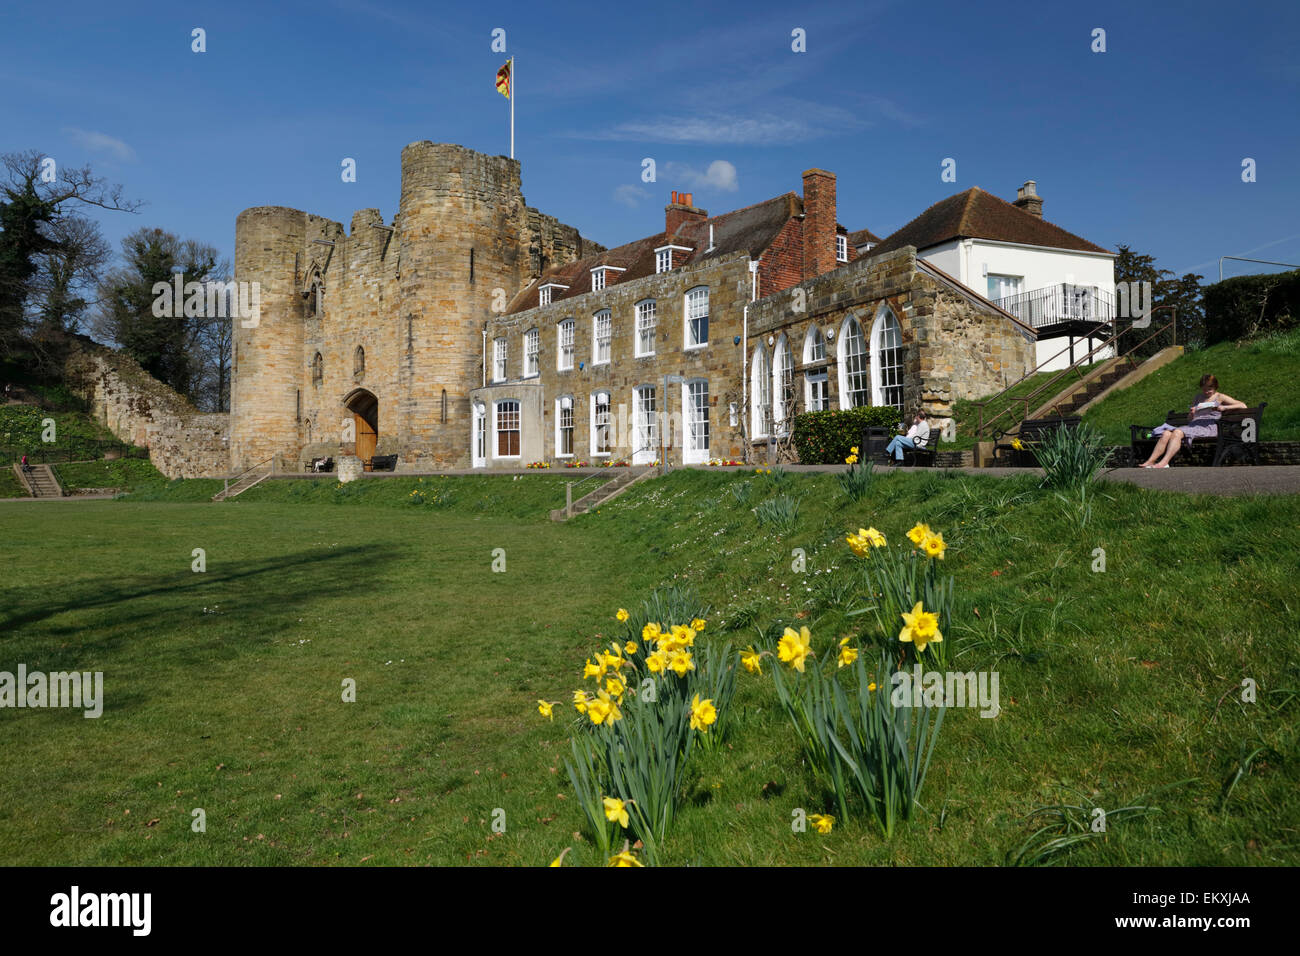 Tonbridge Castle with Daffodils, Tonbridge, Kent, England, United Kingdom, Europe - Stock Image